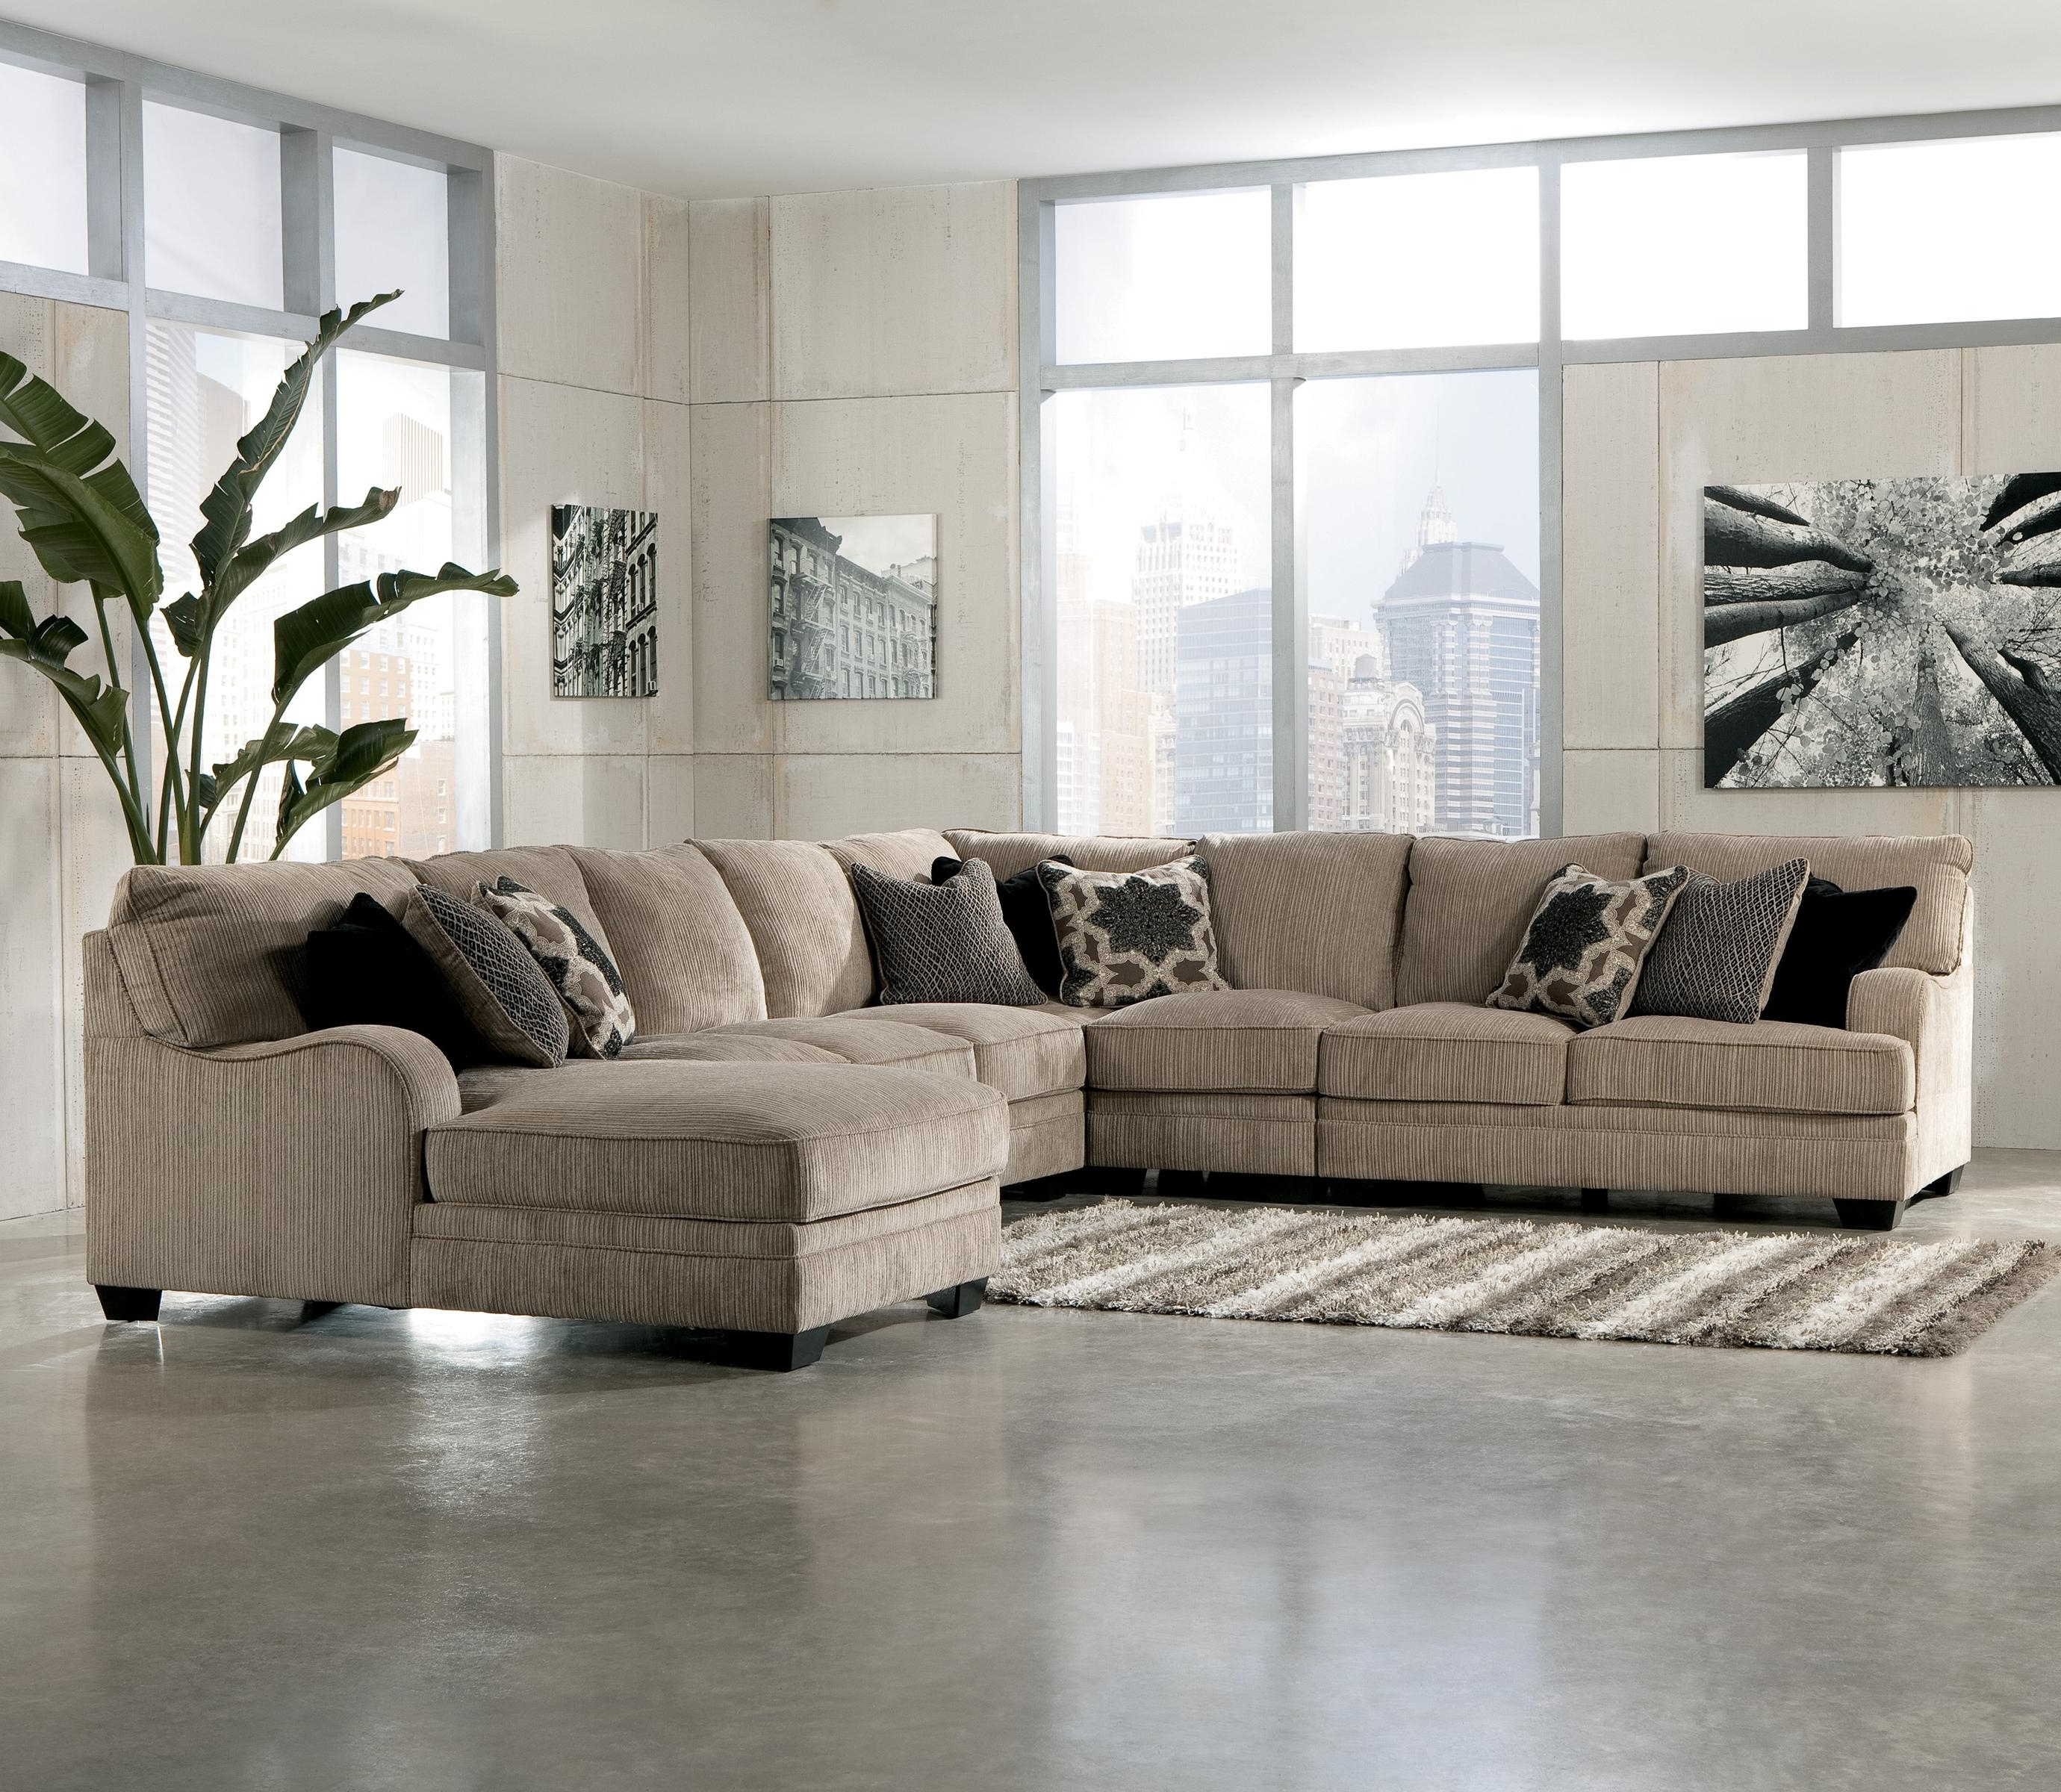 Famous Signature Designashley Katisha – Platinum 5 Piece Sectional Throughout Hattiesburg Ms Sectional Sofas (View 2 of 15)